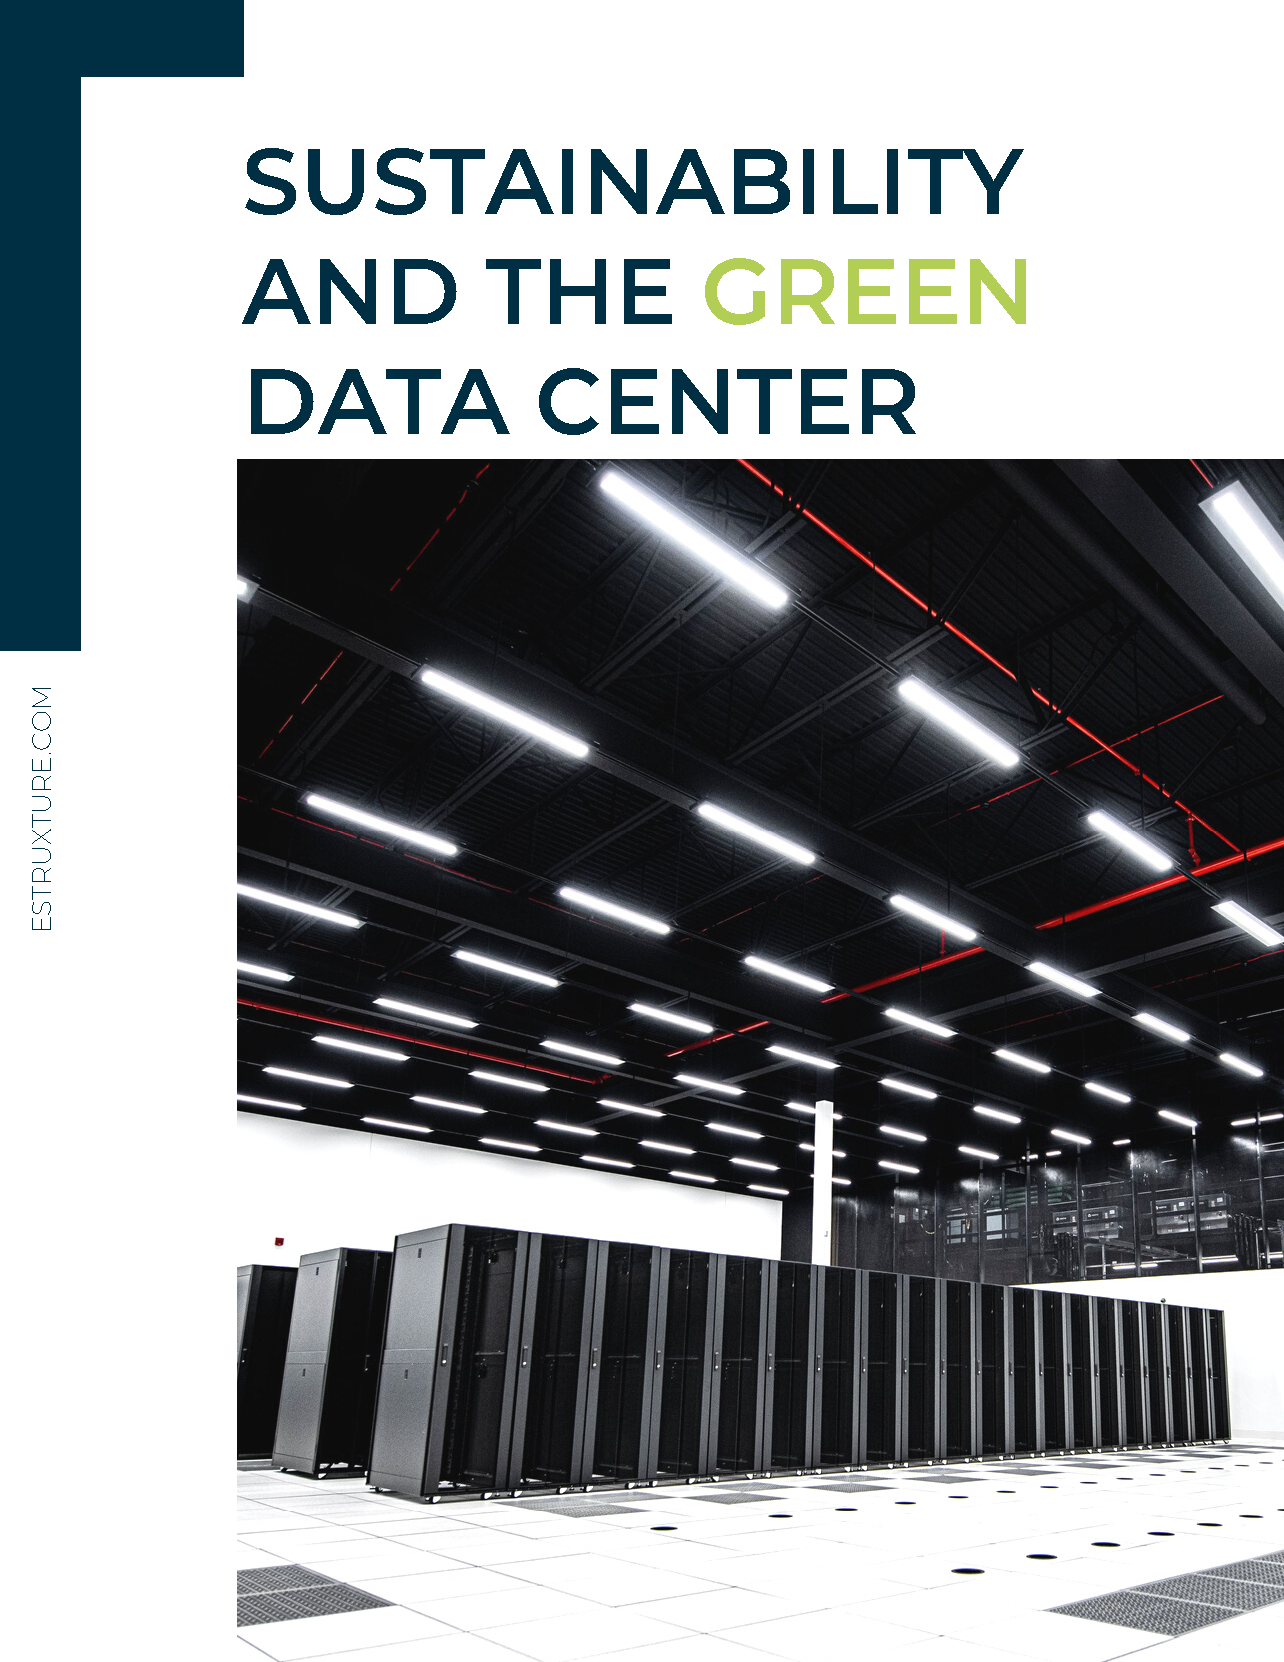 Green Data Center ebook_eStruxture Data Centers_cover